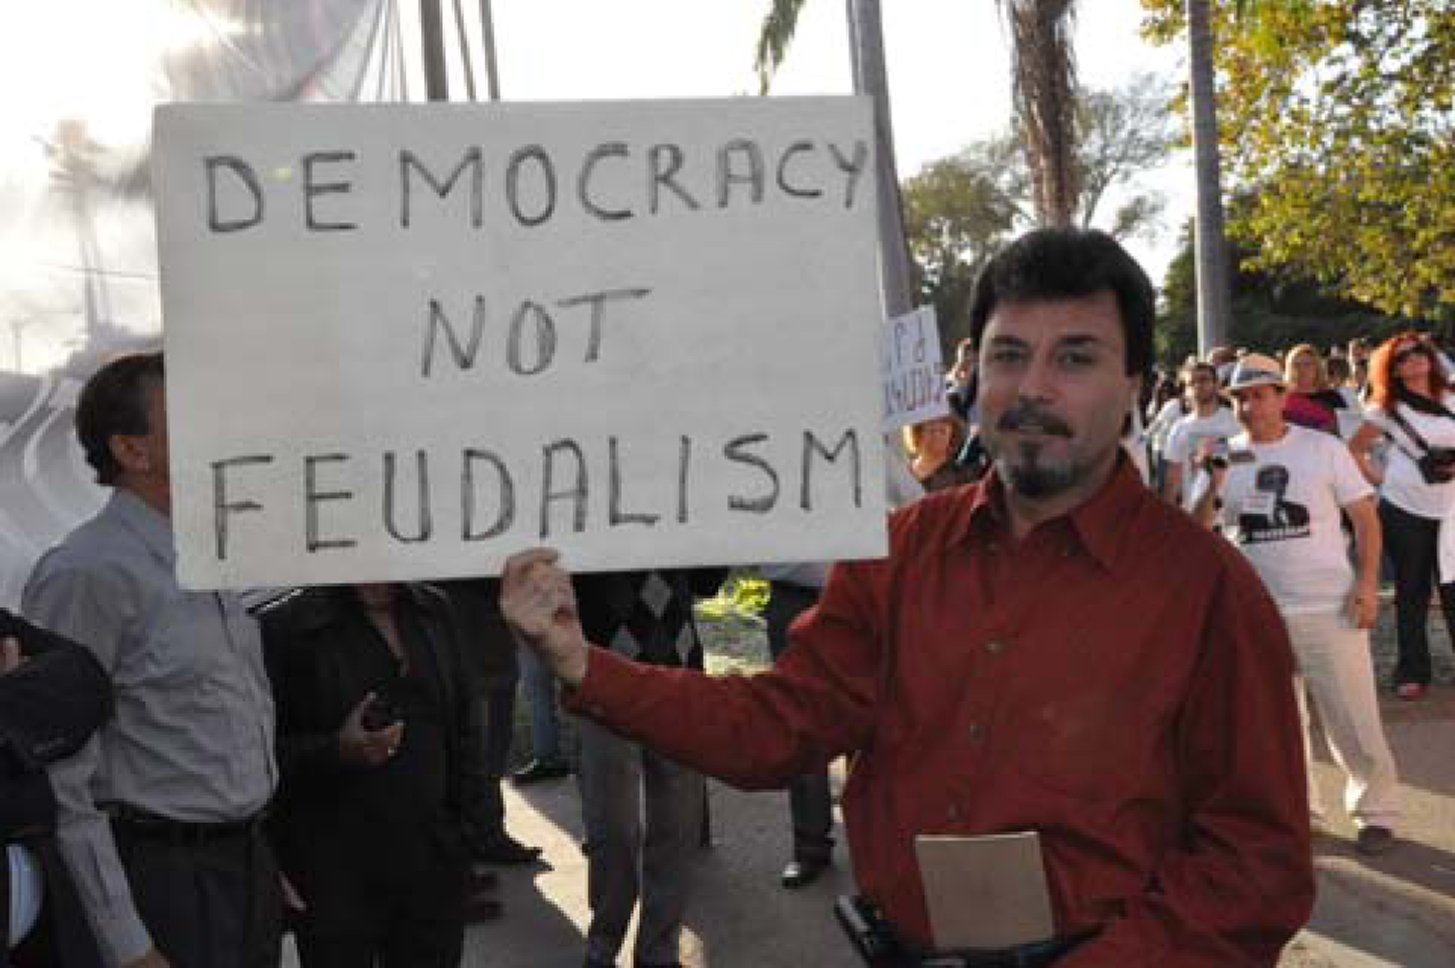 democracy, not feudalism